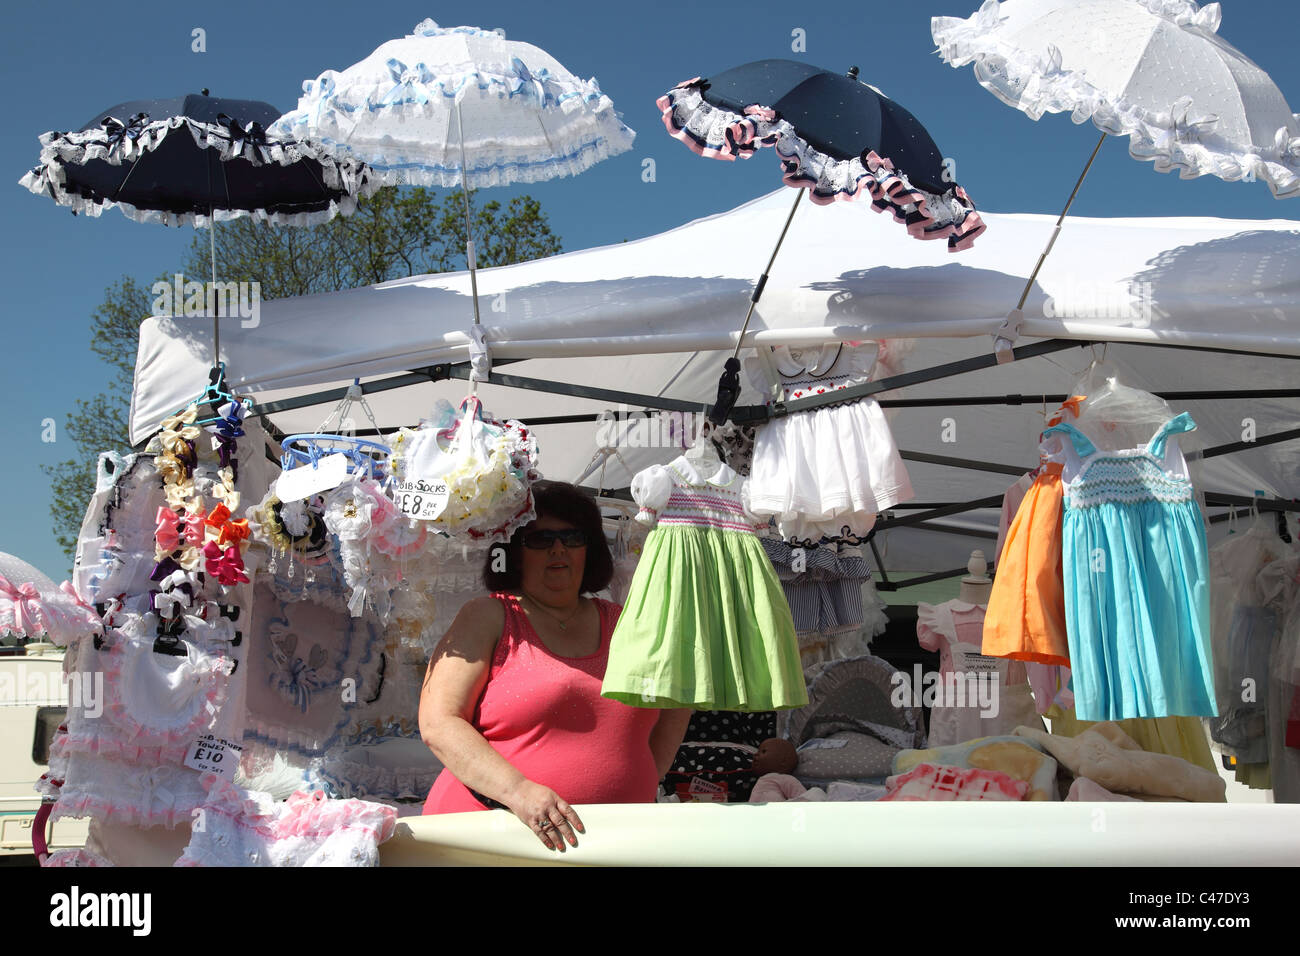 A Stall Selling Baby Clothes At The Appleby Horse Fair Stock Photo